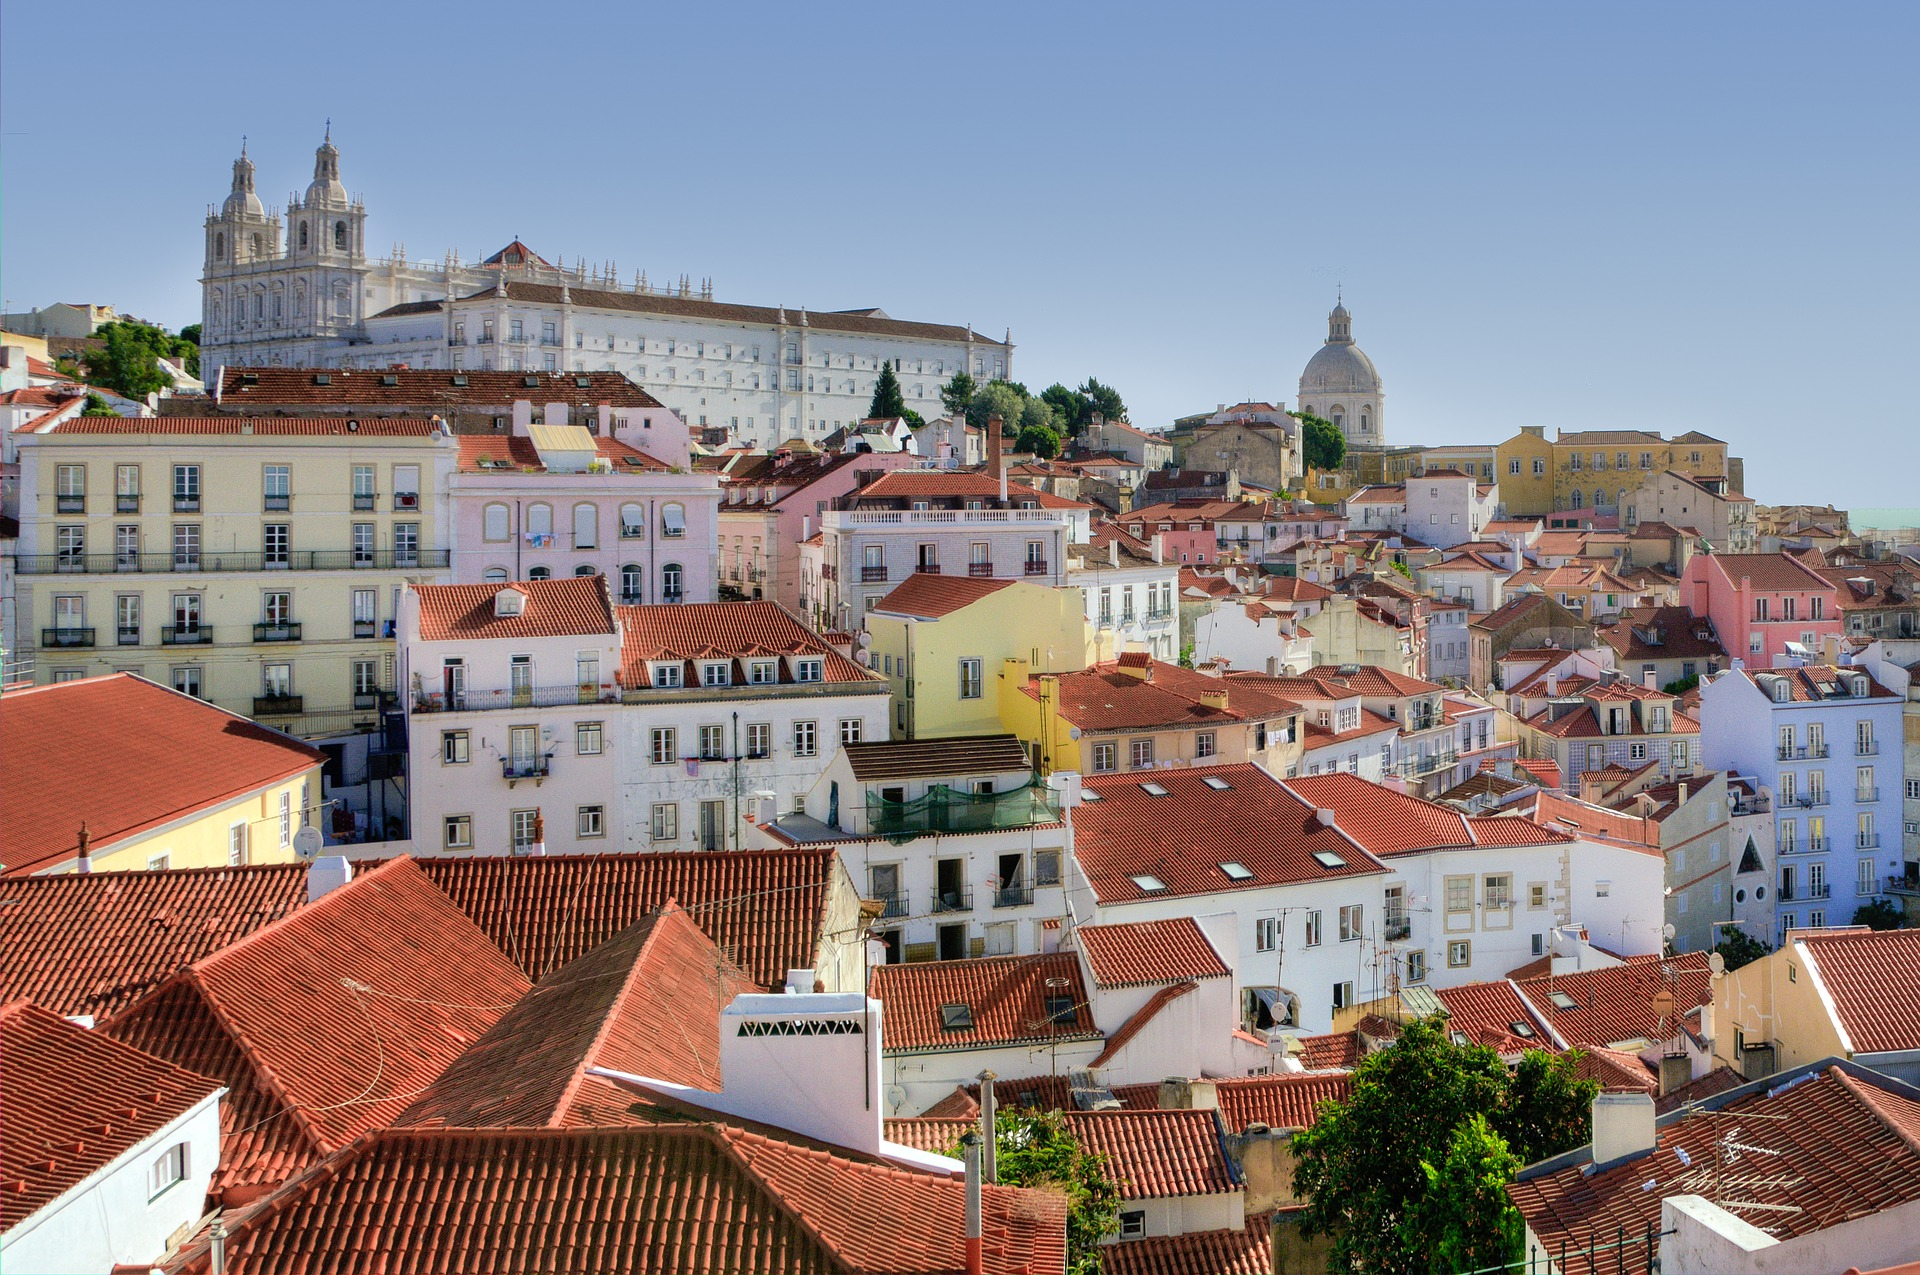 A view over the rooftops of Alfama, Lisbon